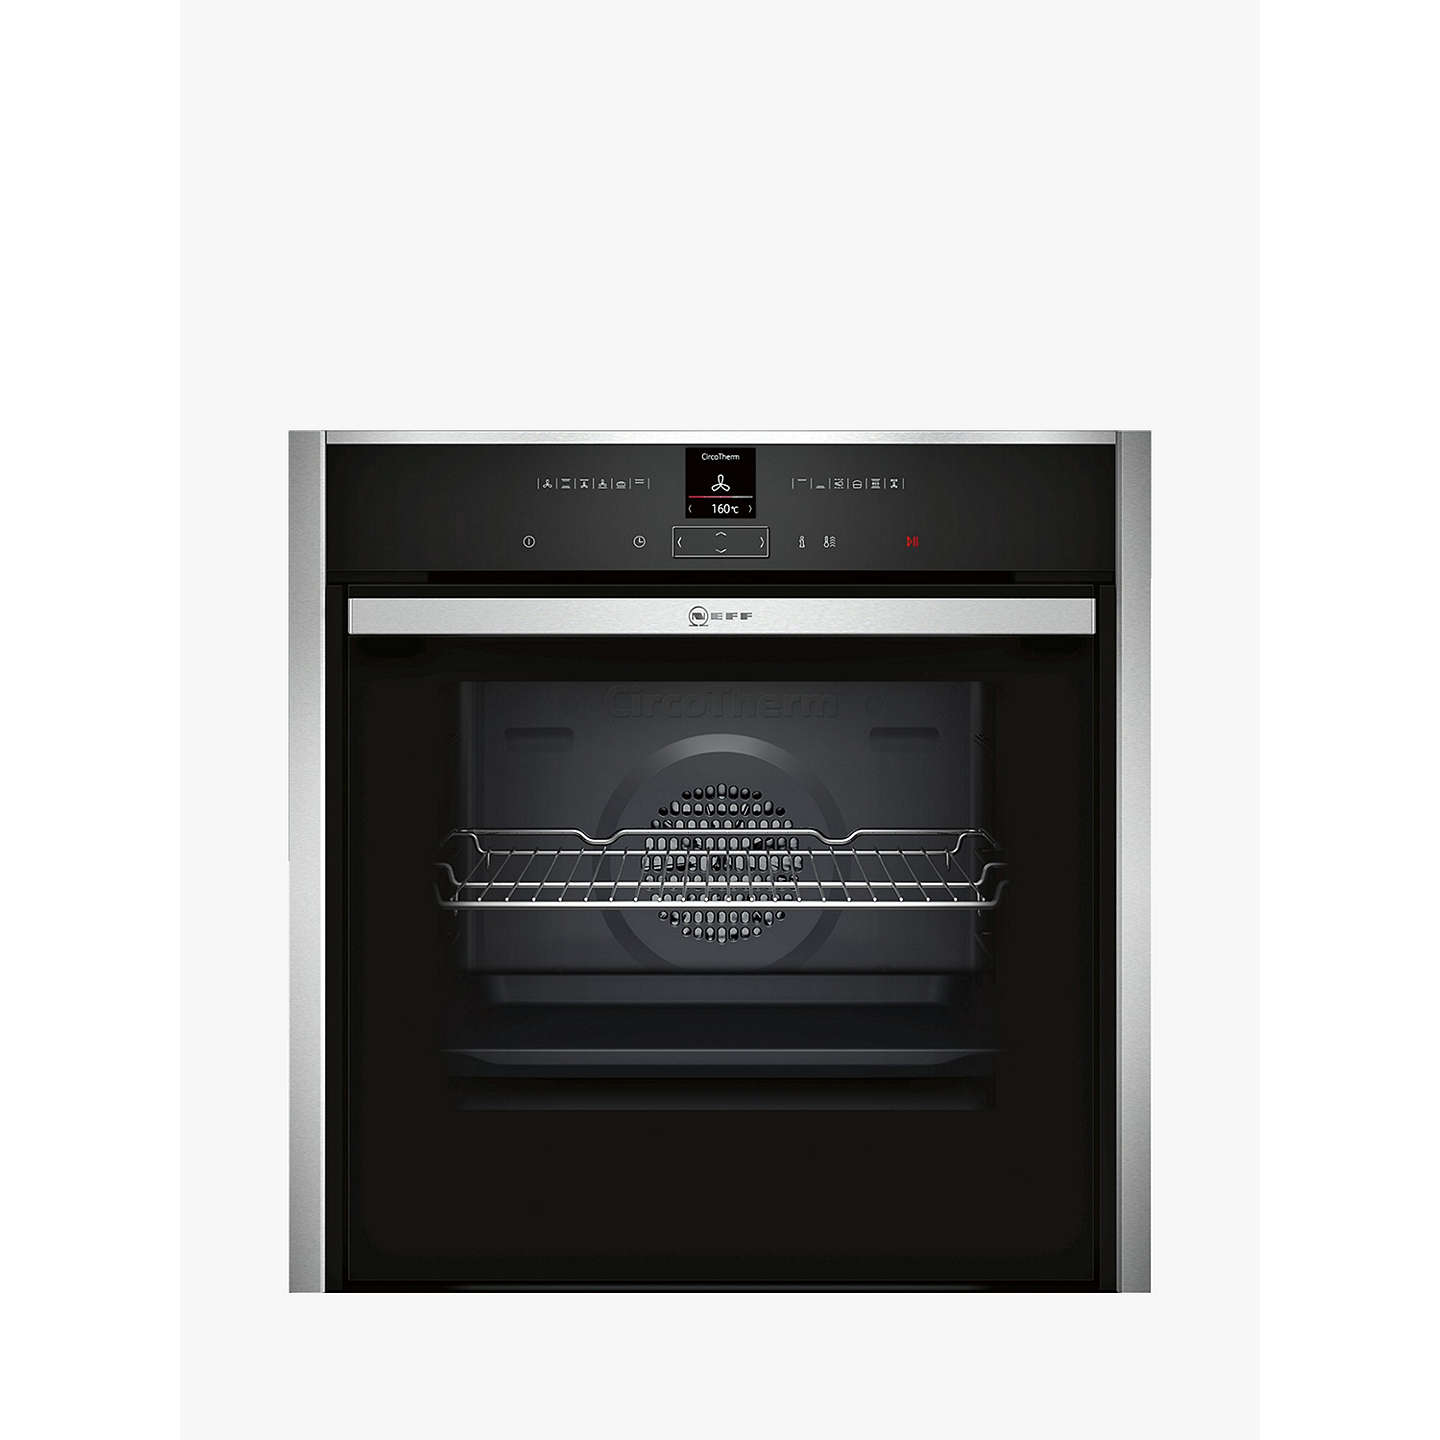 neff b47cr32n0b slide and hide ecoclean single electric oven stainless steel at john lewis. Black Bedroom Furniture Sets. Home Design Ideas